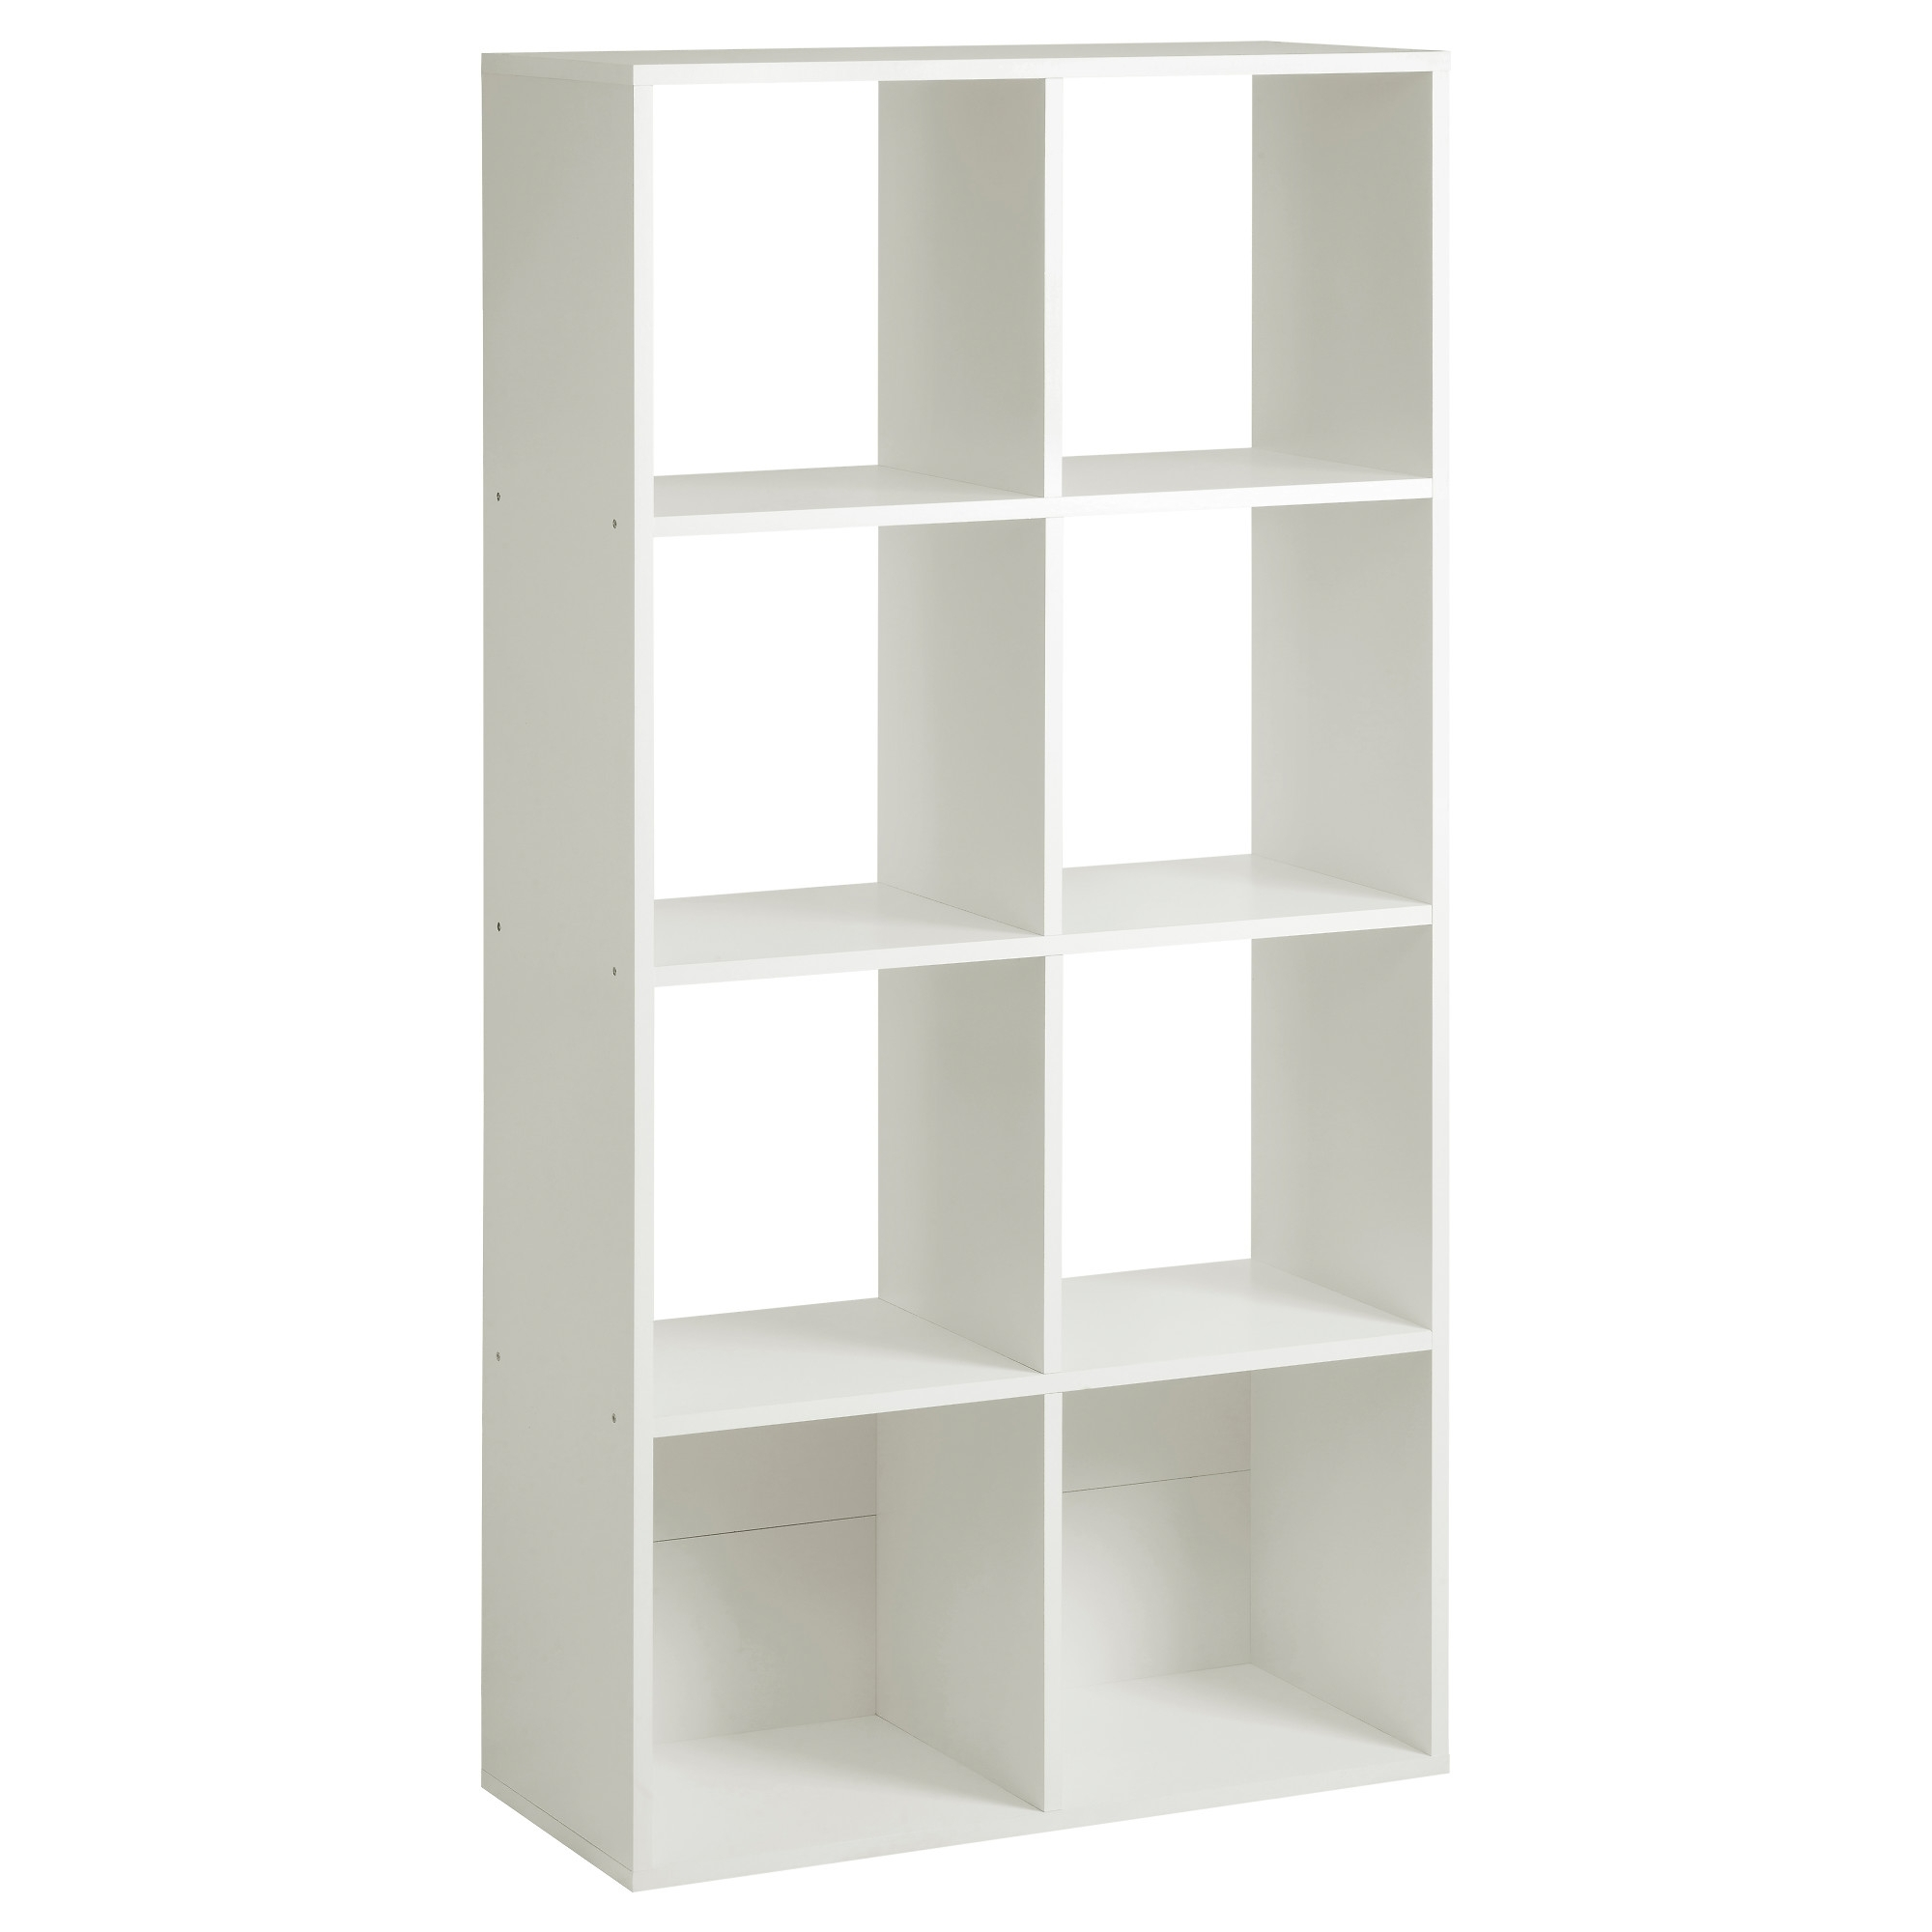 Ikea Cube Bookcases With Regard To Widely Used Biträde Shelving Unit White 68X135 Cm – Ikea (Gallery 4 of 15)